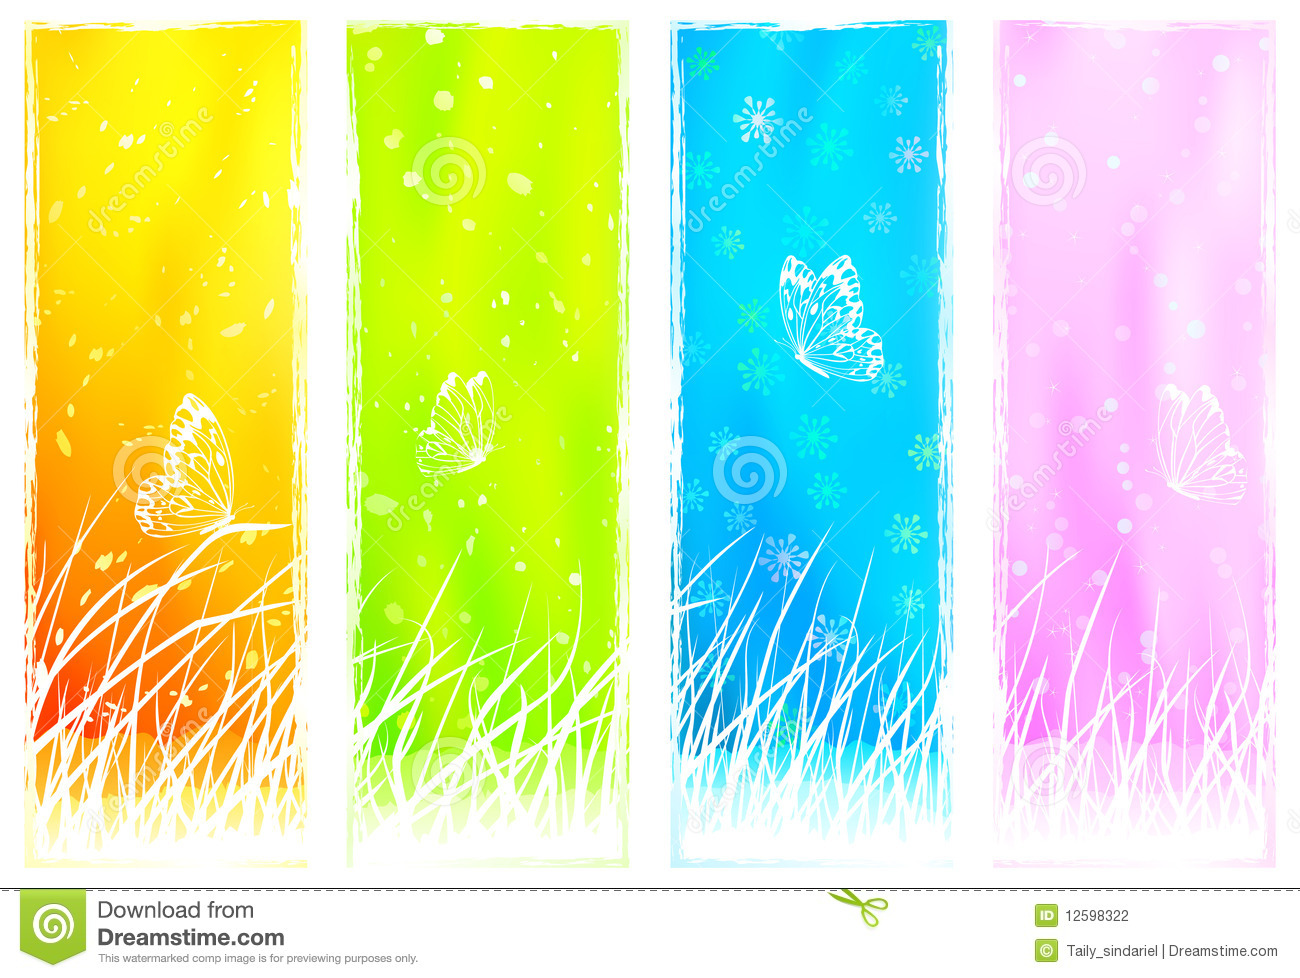 Floral Grassy Vertical Banners Stock Photography - Image: 12598322